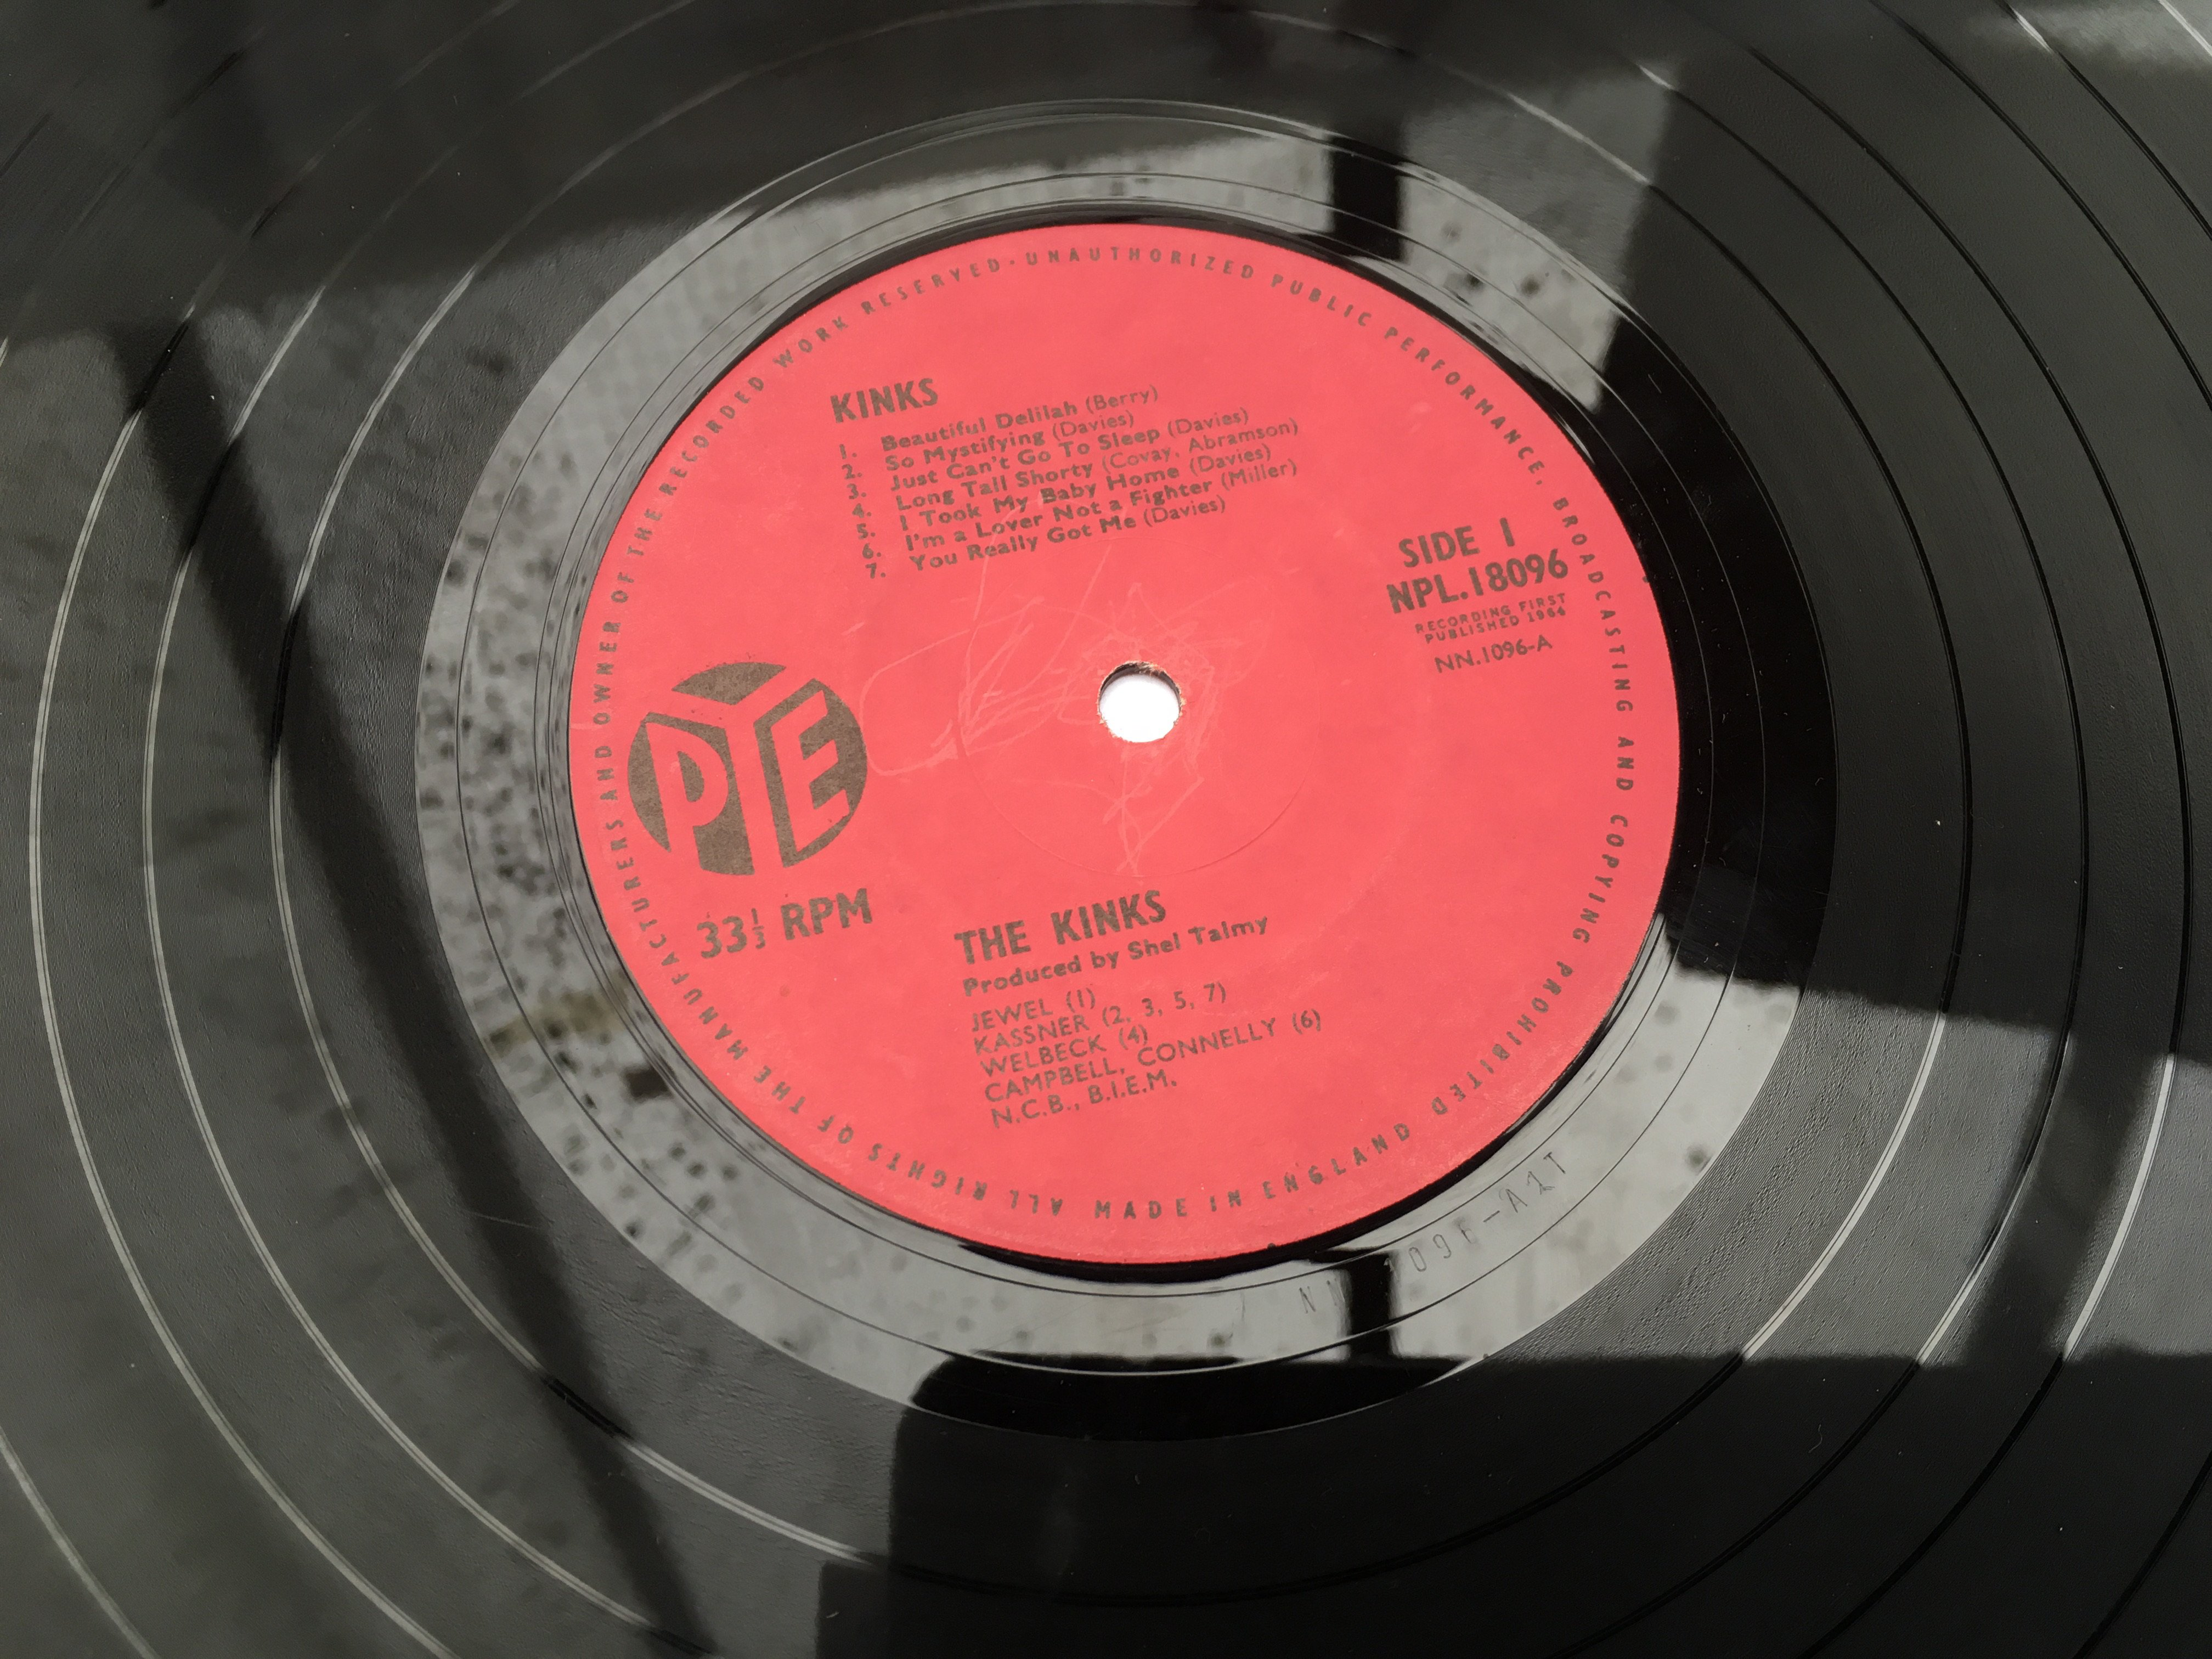 A first UK pressing of the Kinks debut LP, NPL.180 - Image 2 of 2